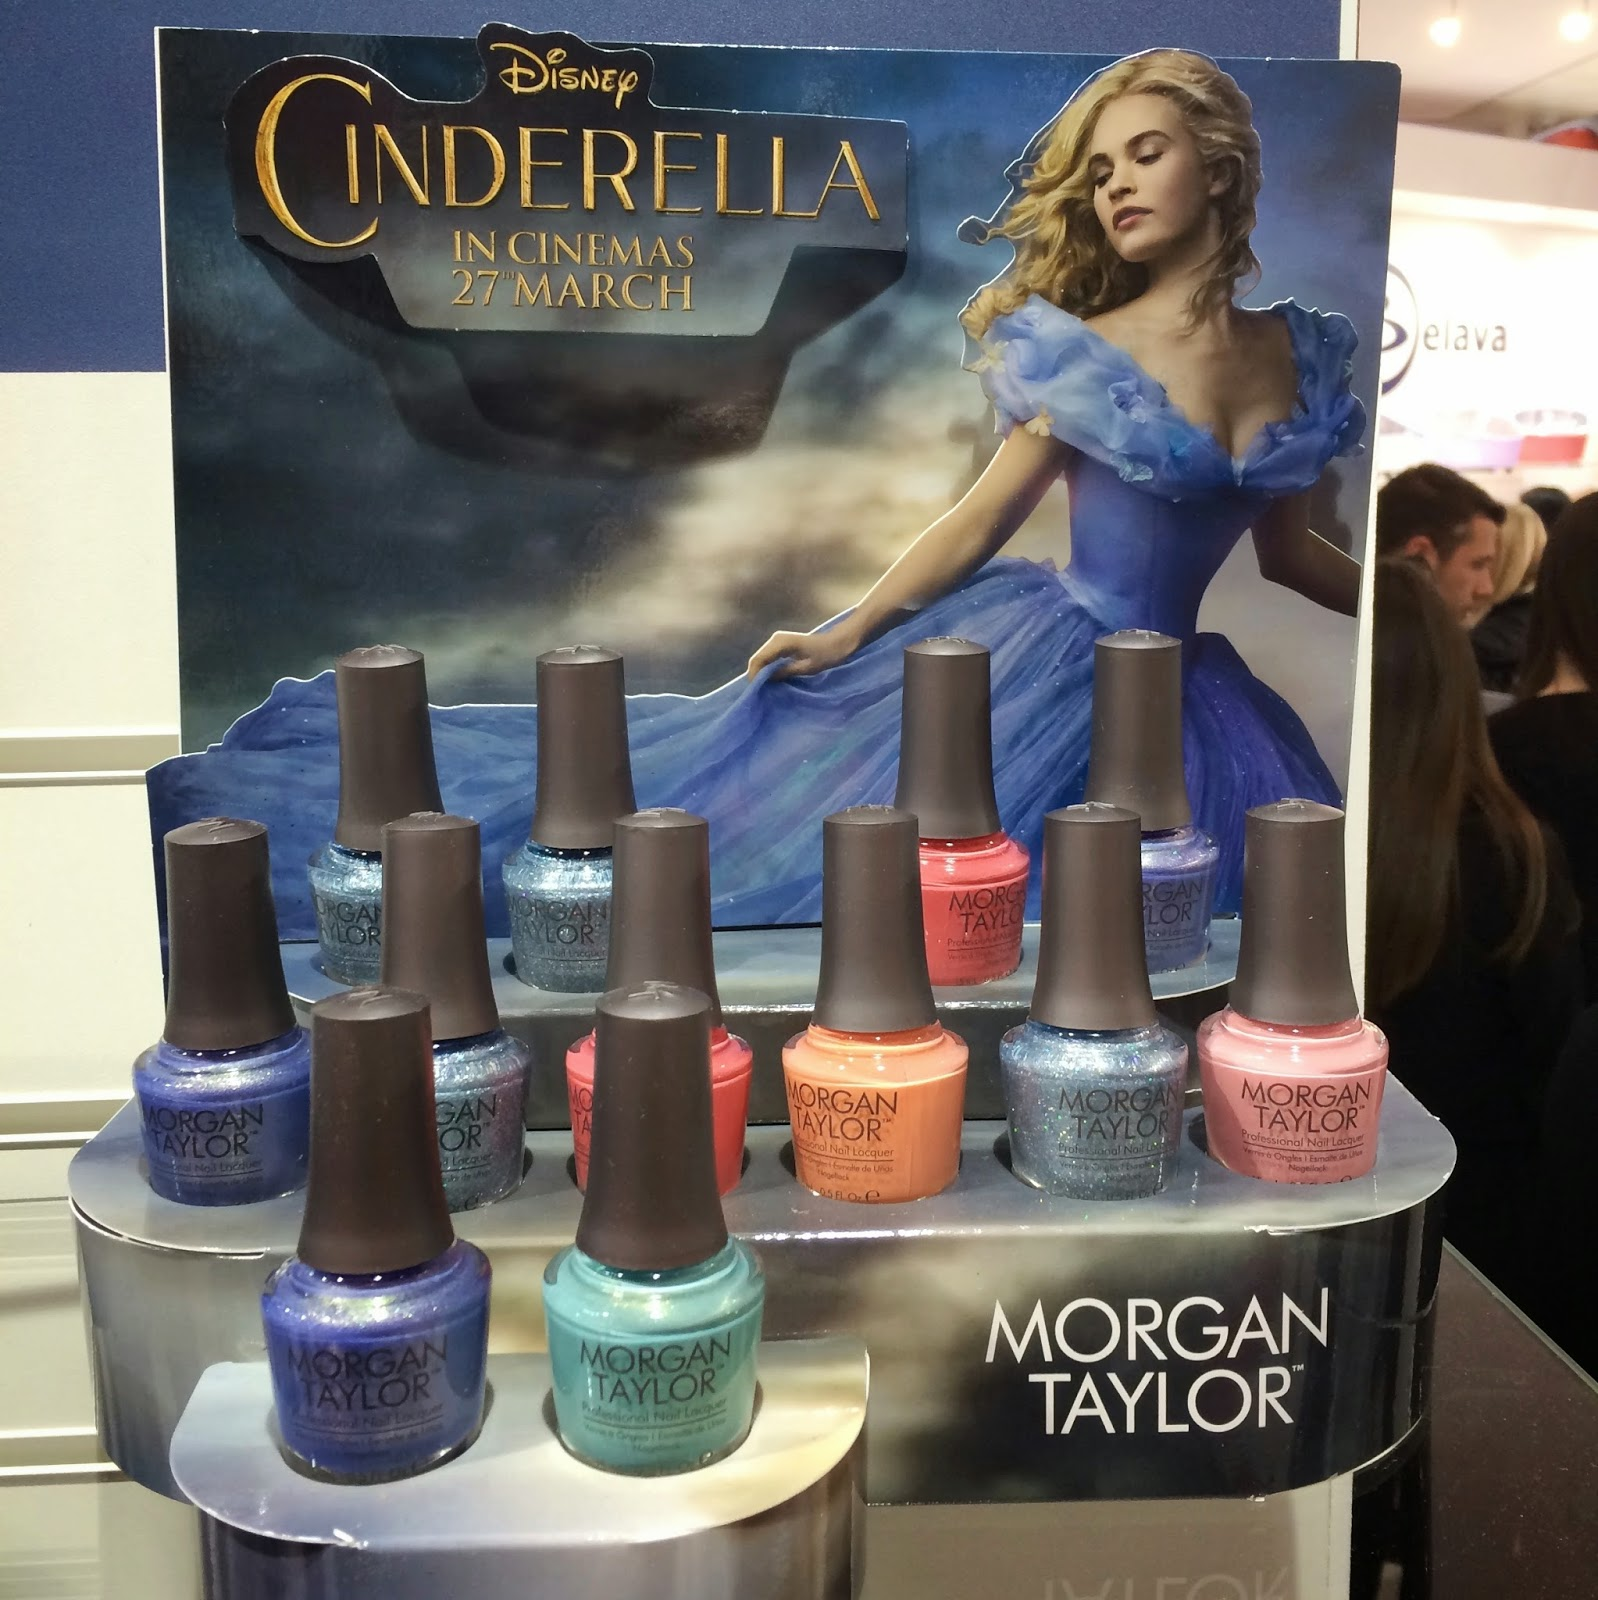 morgan-taylor-cinderella-collection-2015